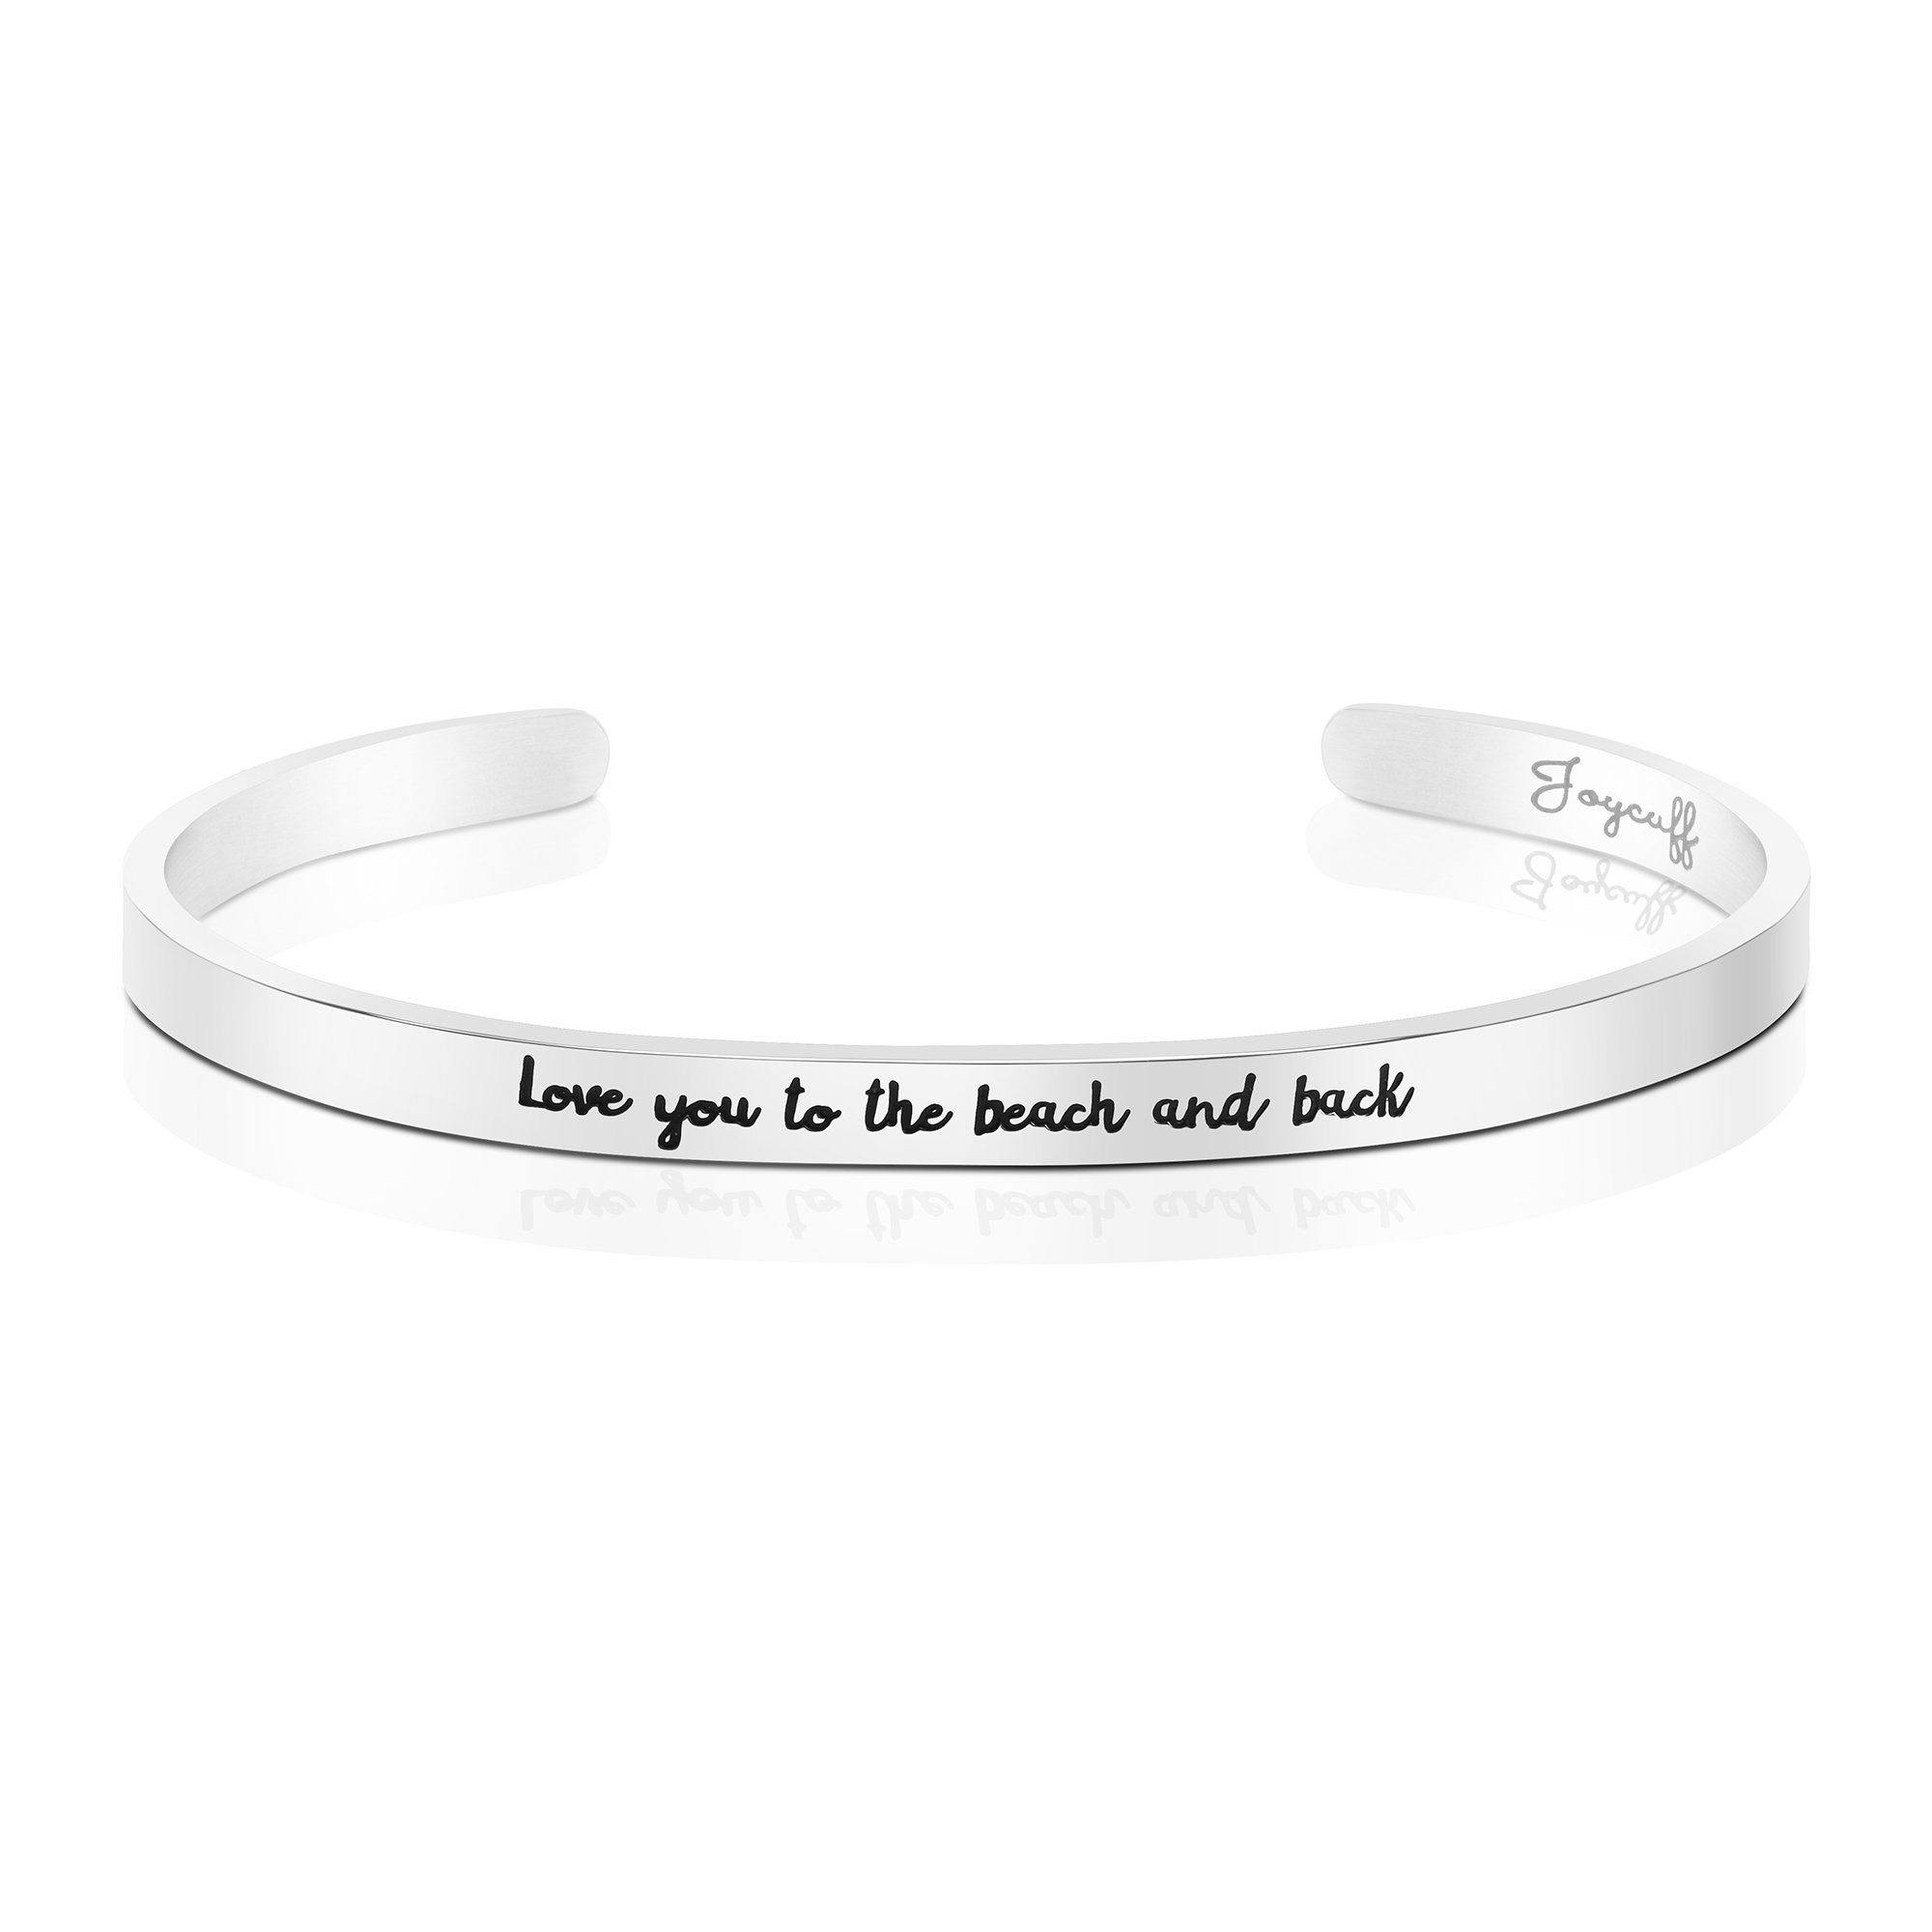 Joycuff Beach Jewelry Stainless Steel Cuff Bangle Bracelet Ocean Inspired Love You To The Beach And Back